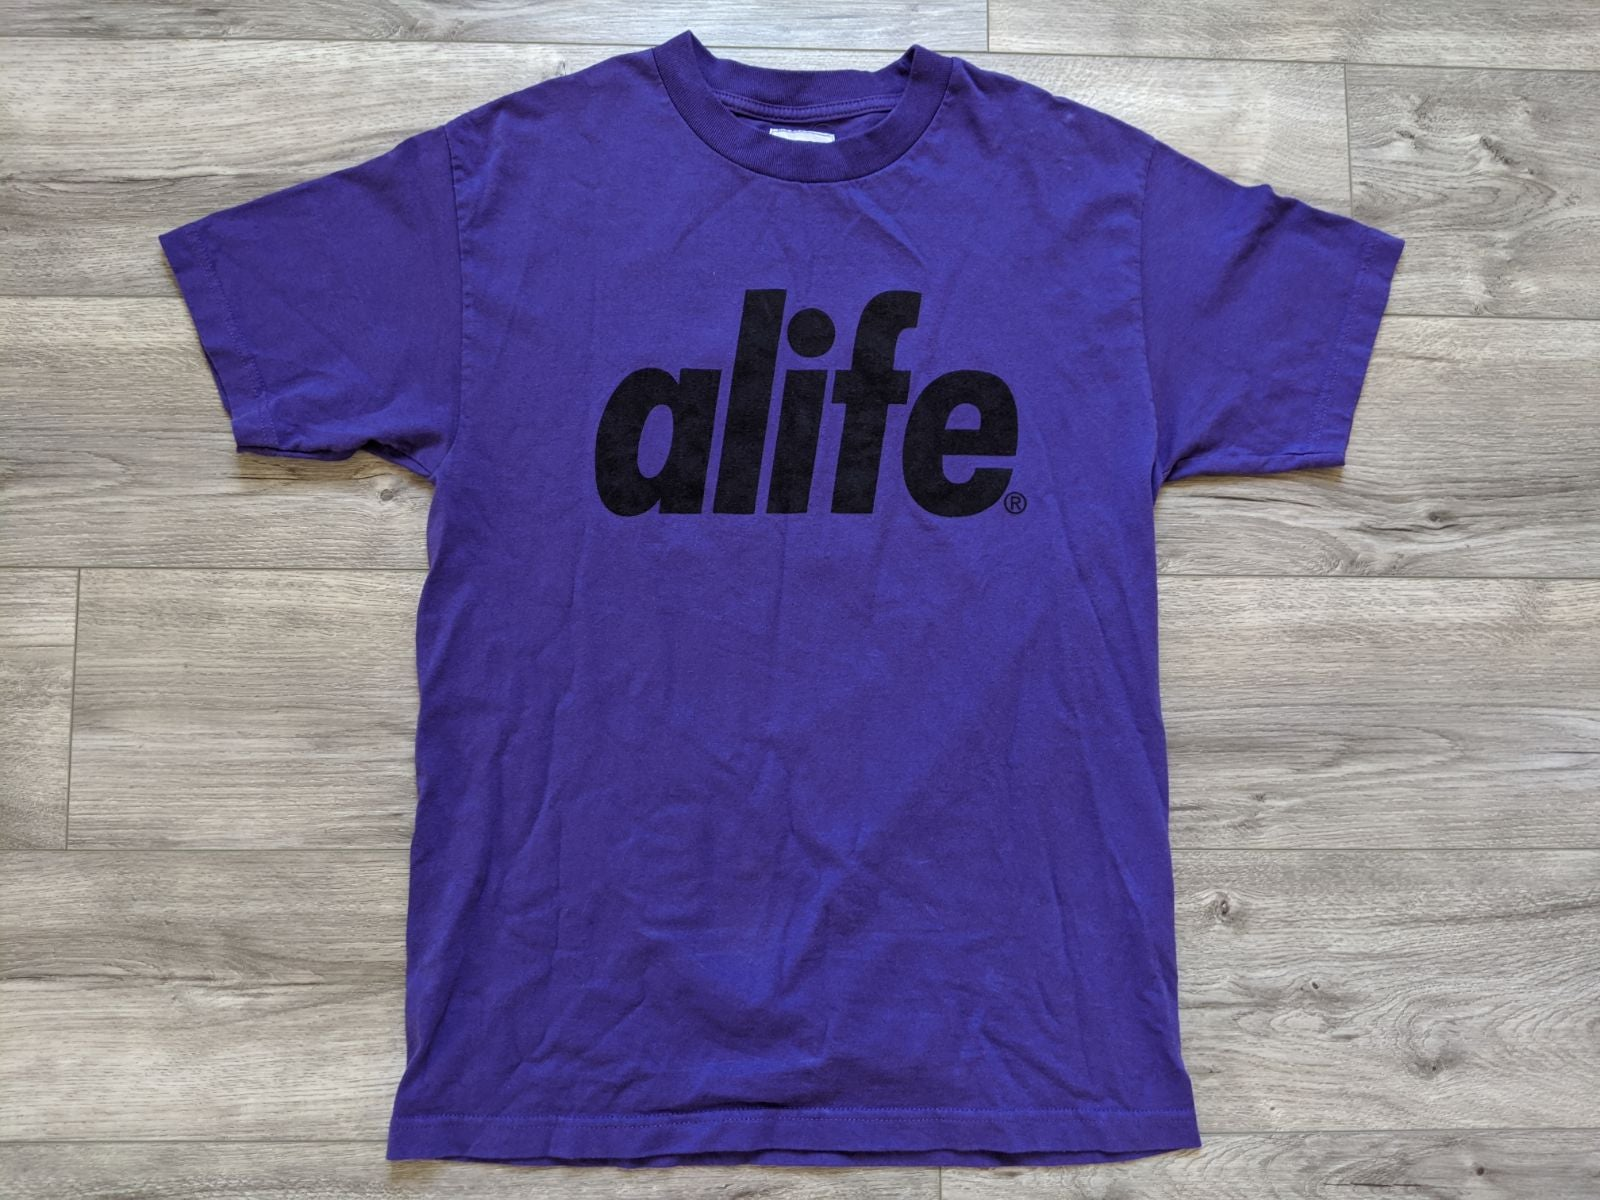 ALIFE Dark Purple Shirt NY represent